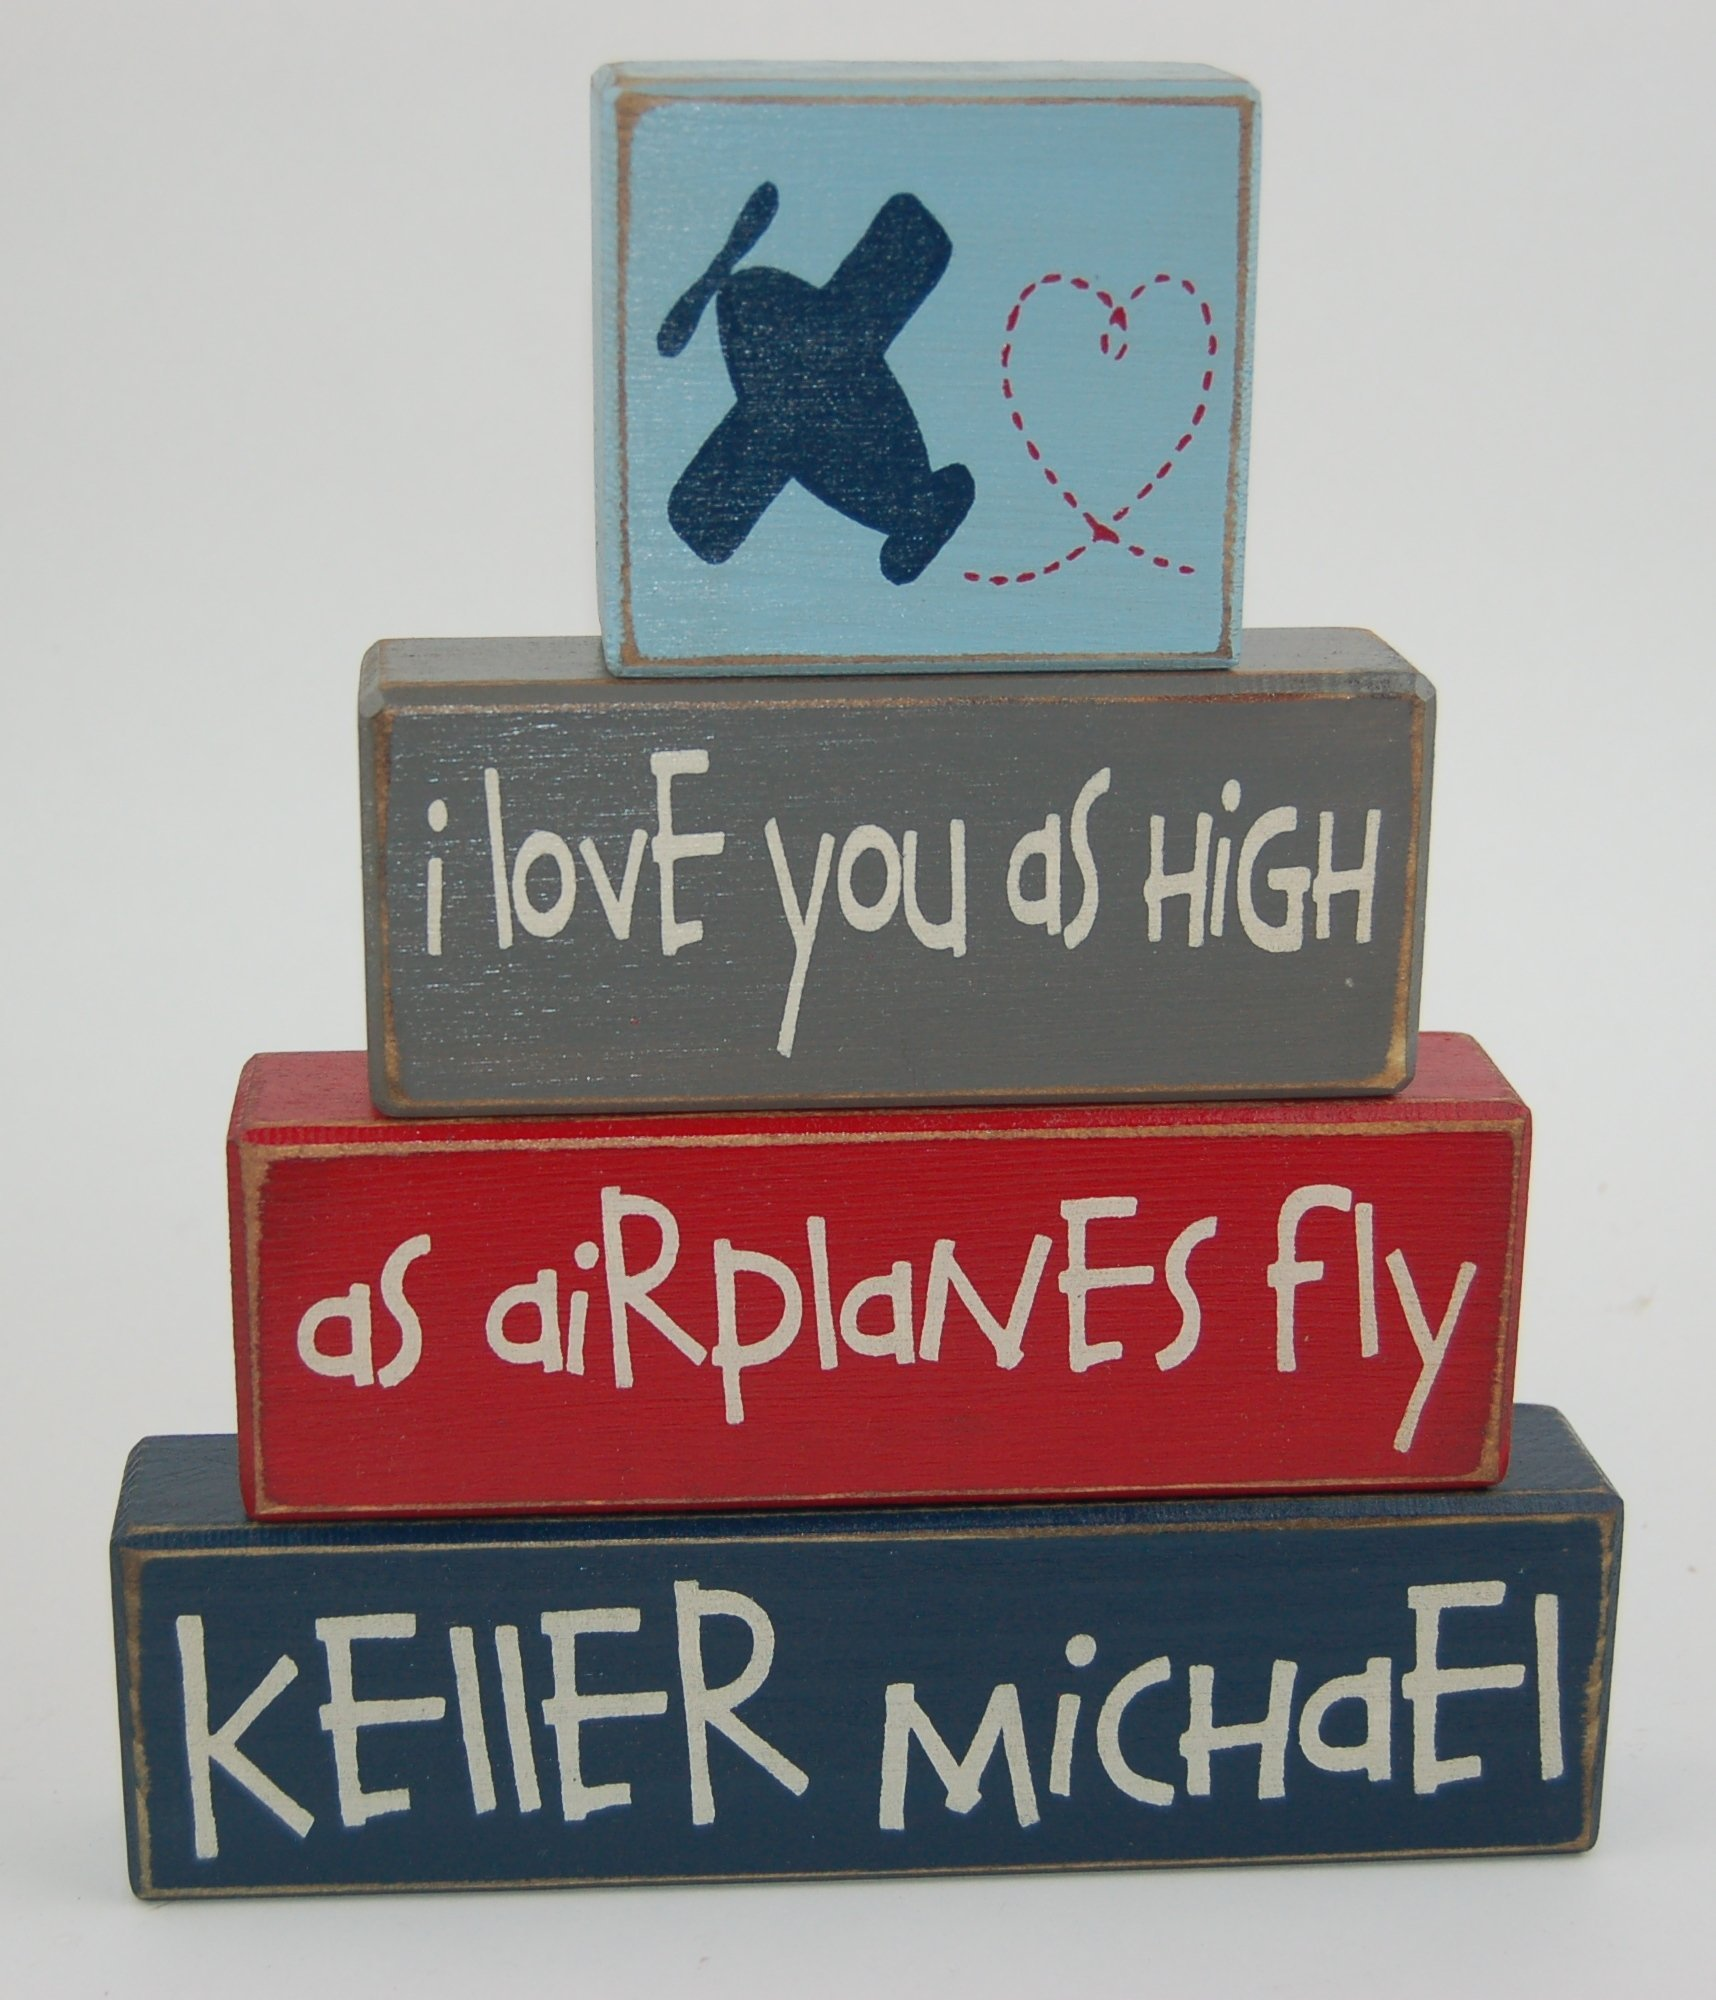 Personalized Name - I love you as high as airplanes fly - Primitive Country Wood Stacking Sign Blocks Airplane Theme Decor-Airplane Nursery Room-Airplane Baby Shower-Airplane Birthday Home Decor